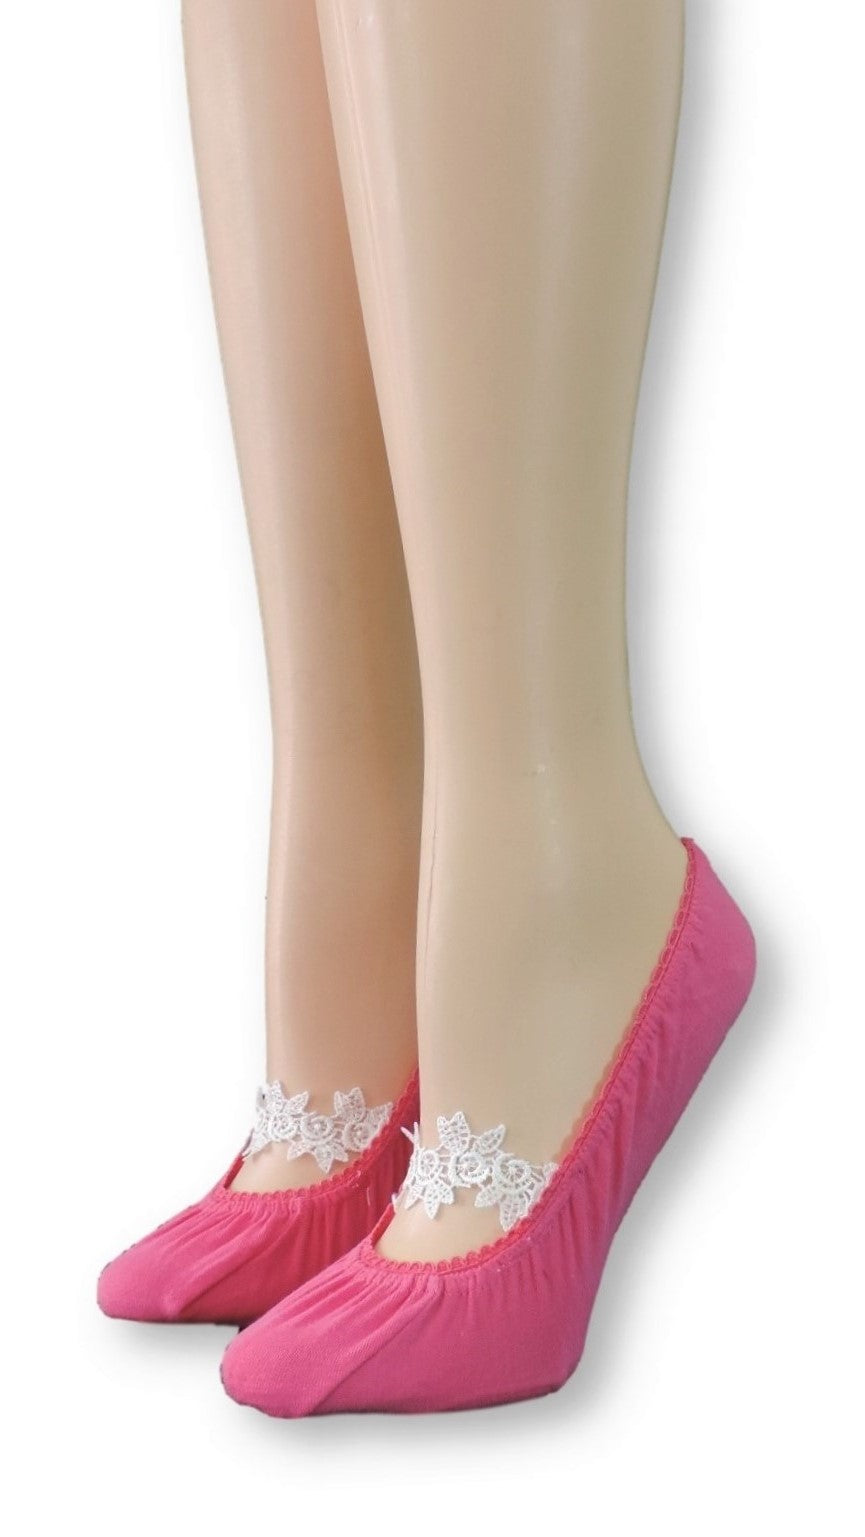 Gulabi Ankle Socks with Floral Lace